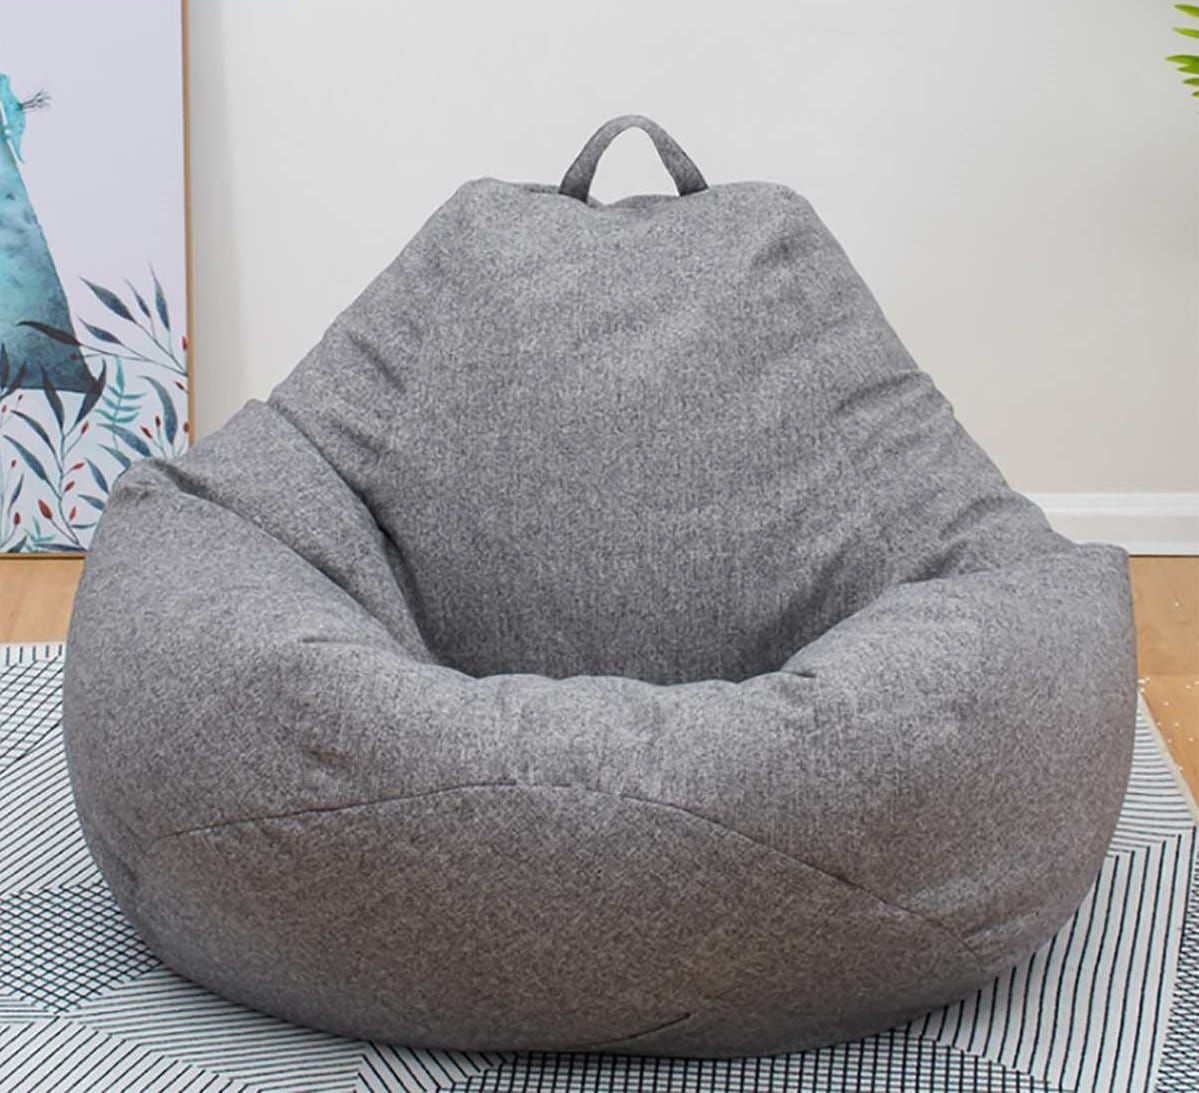 Coverbrilliant Large Bean Bag Lively Focus Bean Bag Sofa Large Bean Bag Chairs Bean Bag Chair